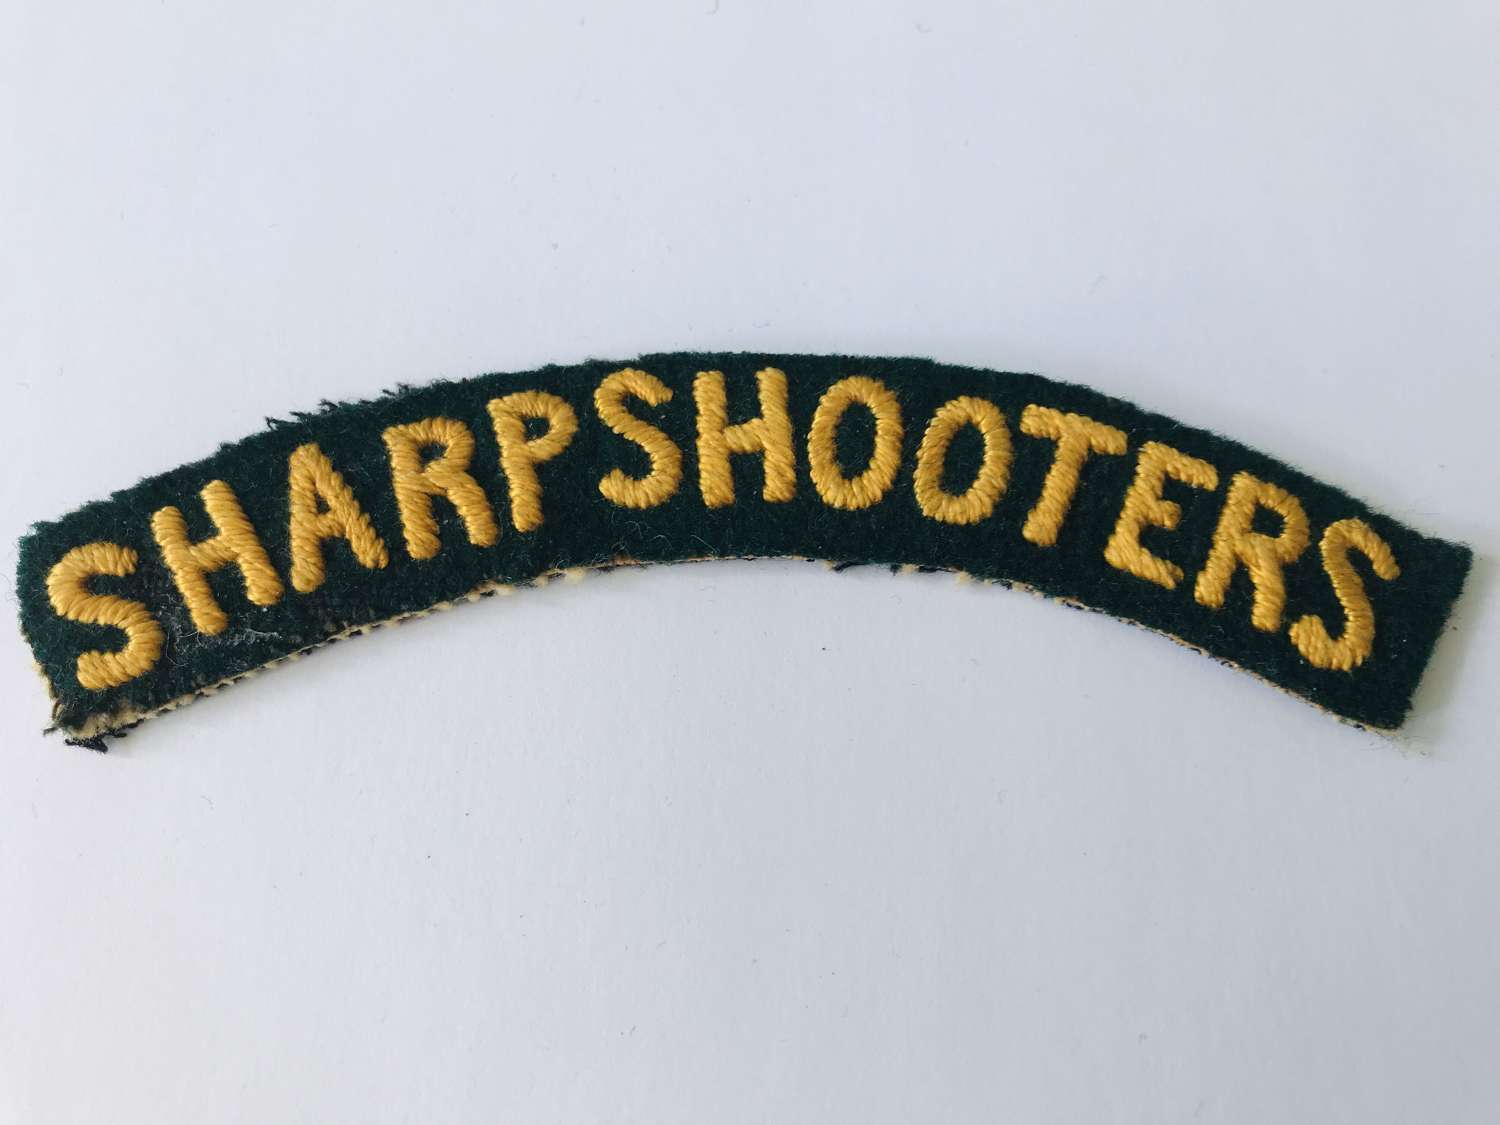 Embroidered sharpshooters shoulder title